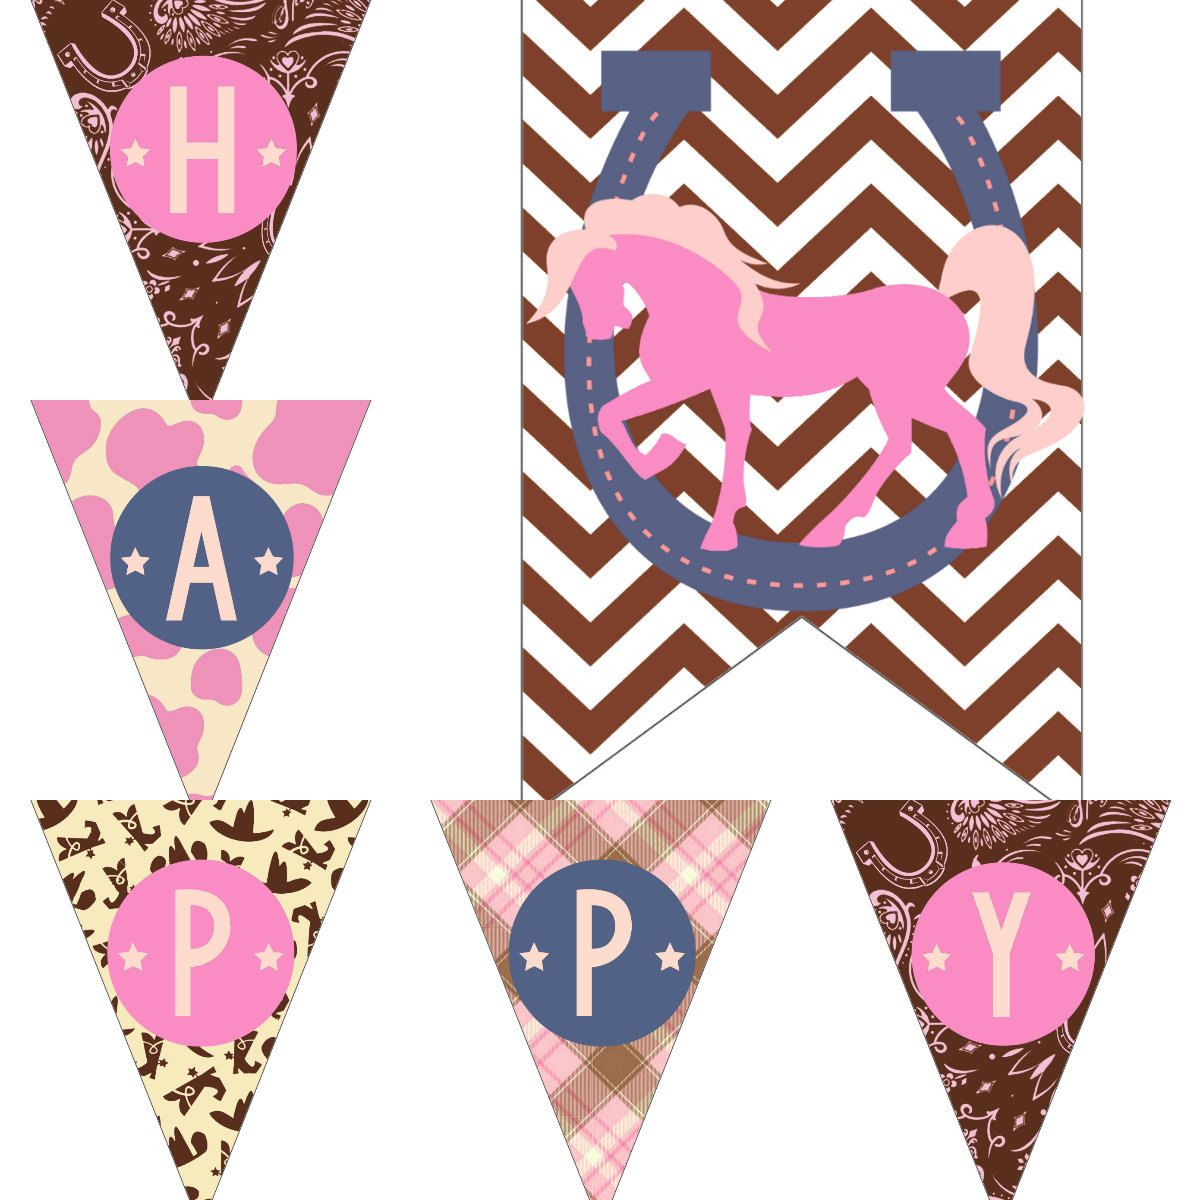 Cowgirl Birthday Decorations Cowgirl Birthday Decorations Pink Horse Cowboy Party Pack Package